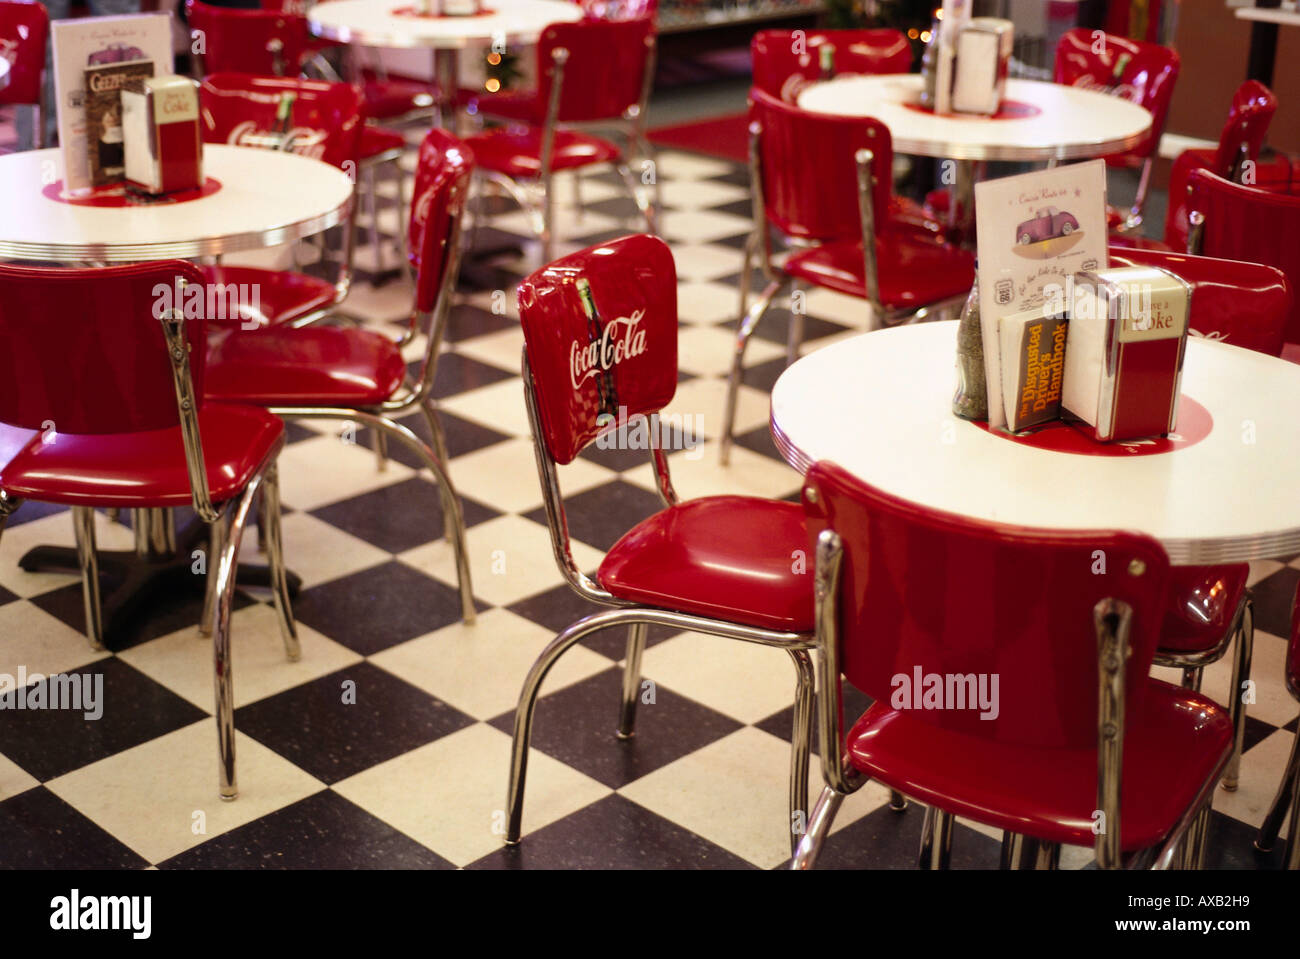 Chairs And Tables At A Cafe, Dinneru0027 S, Twister Soda, Route 66, Arizona,  USA, America